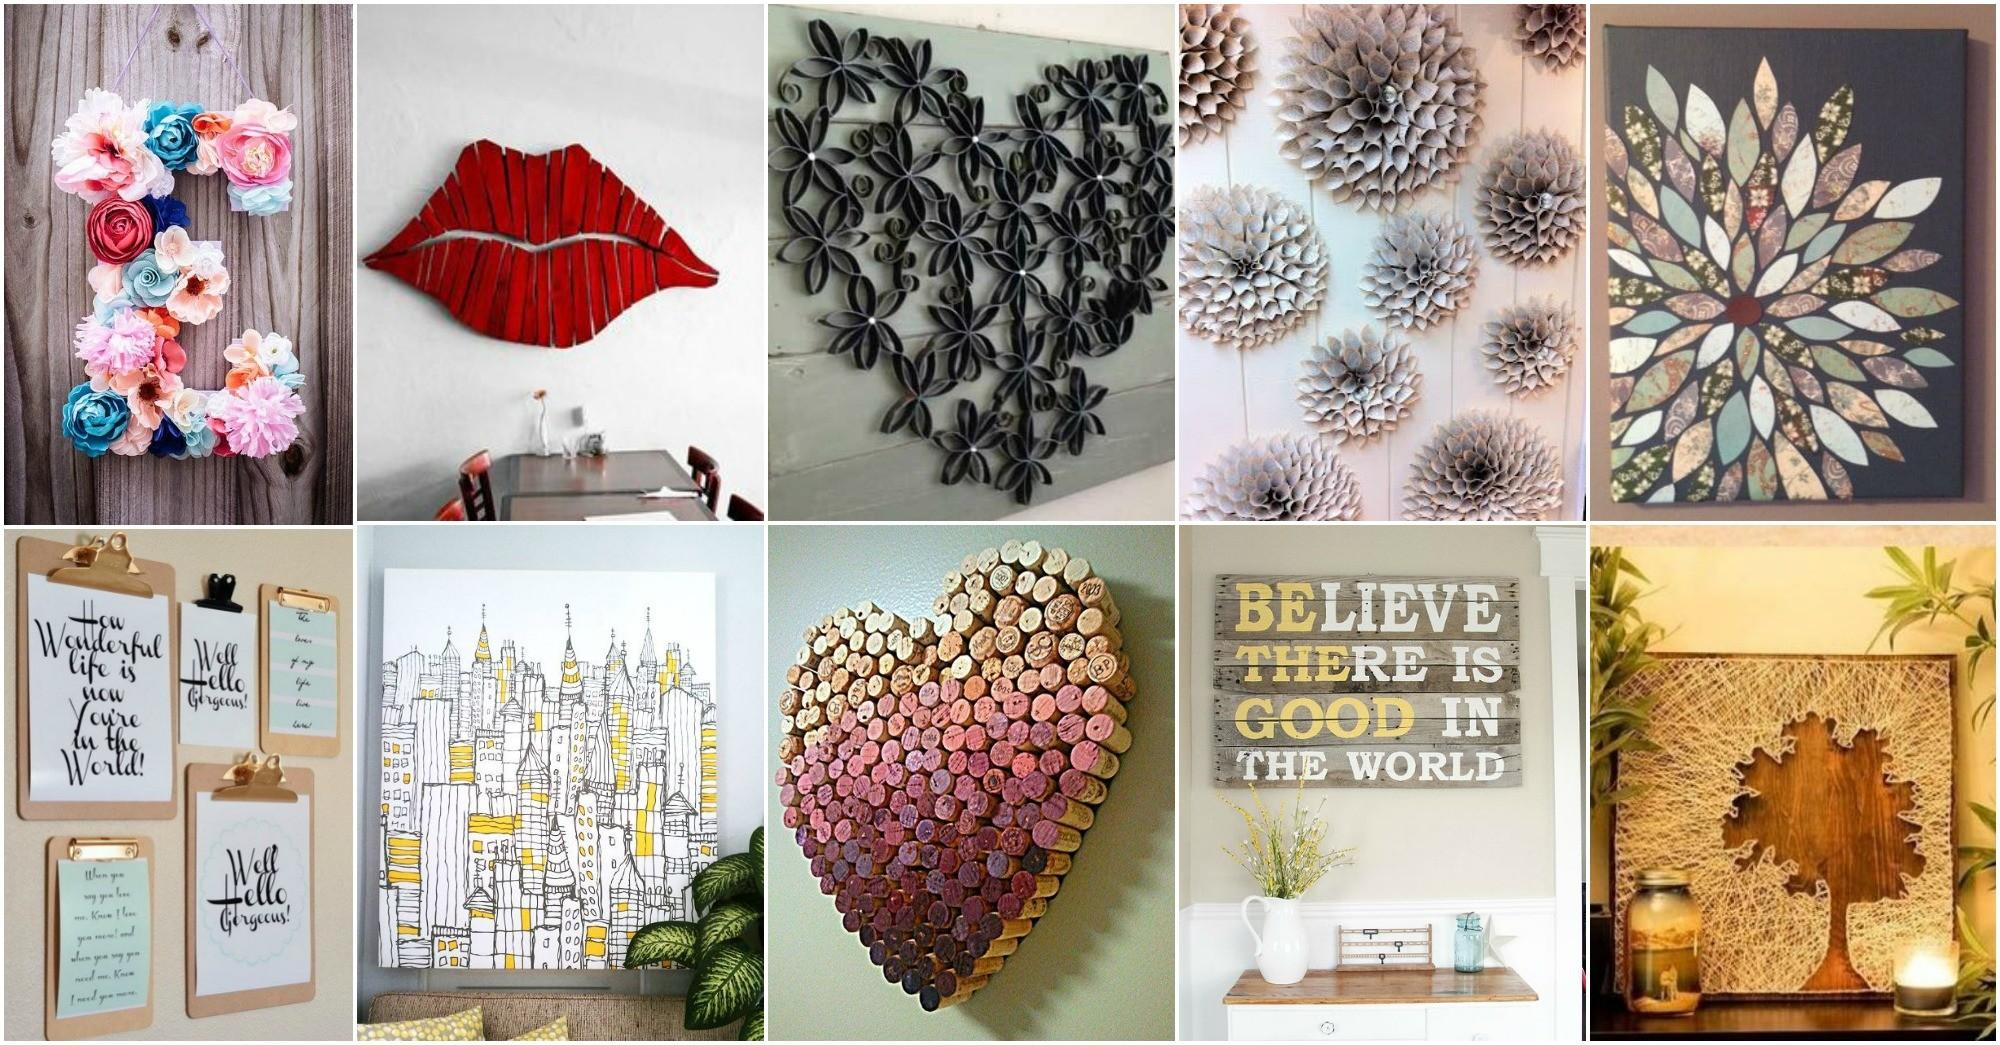 More Amazing Diy Wall Art Ideas Cozy Home